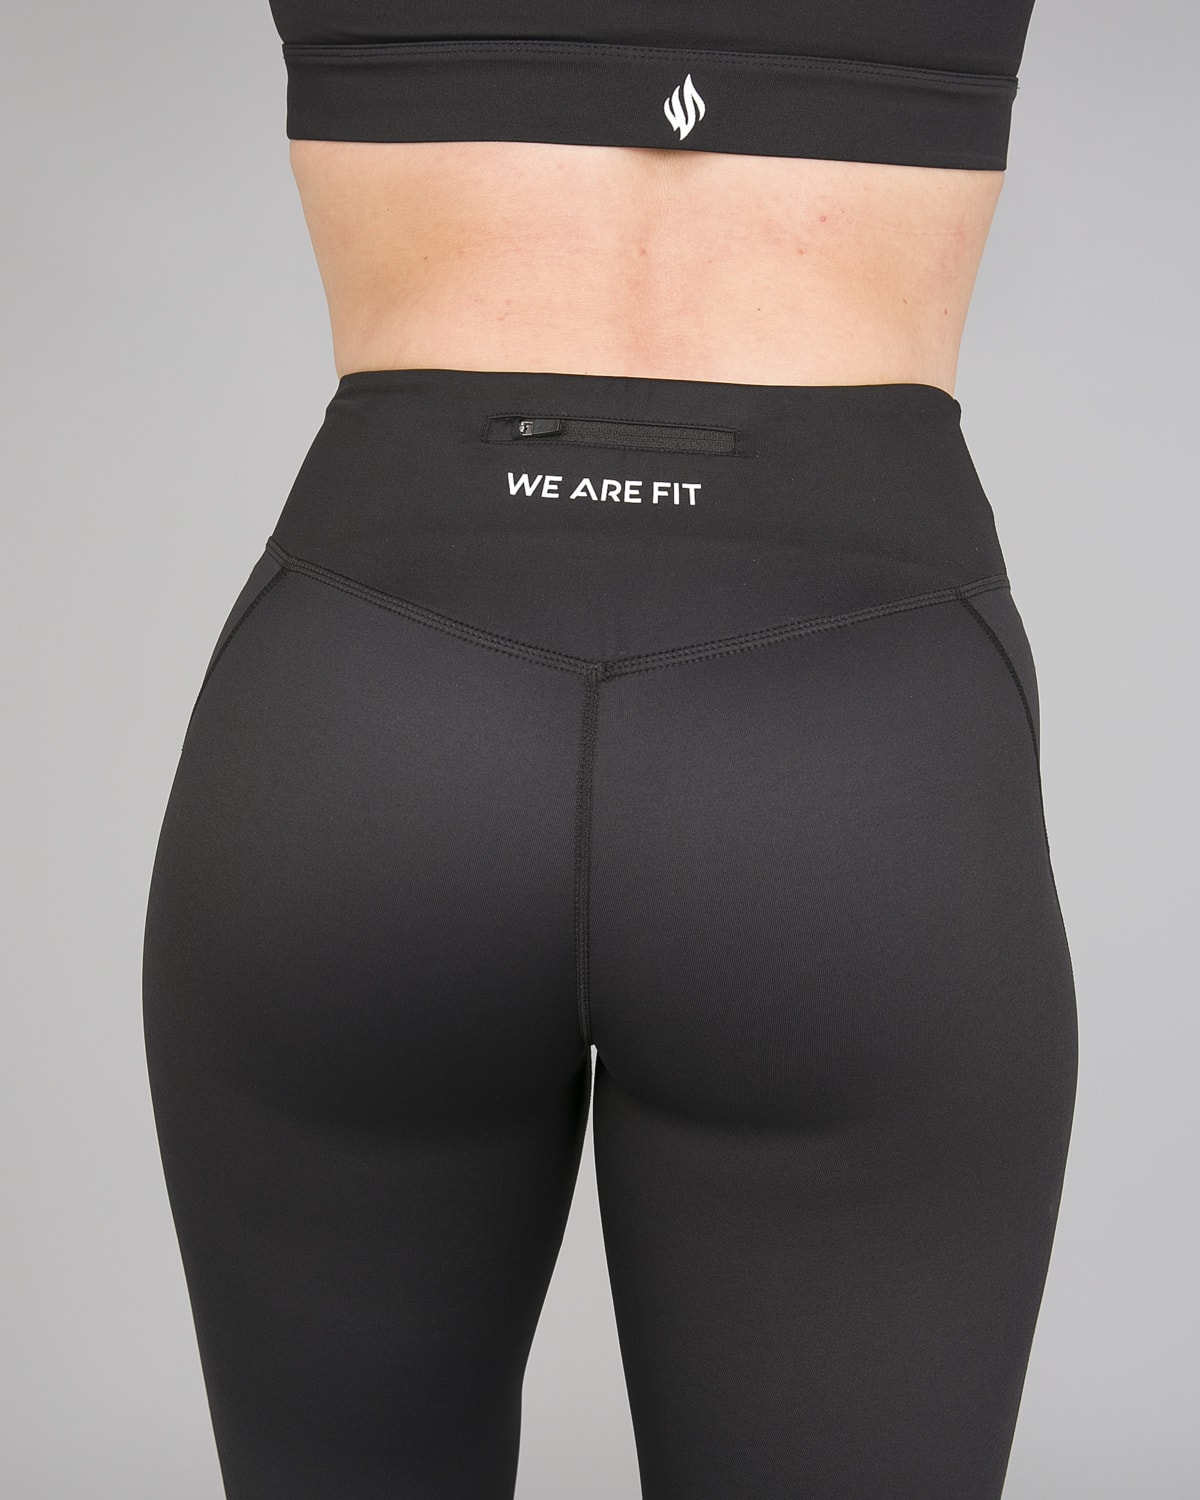 We Are Fit Star Black Tights6